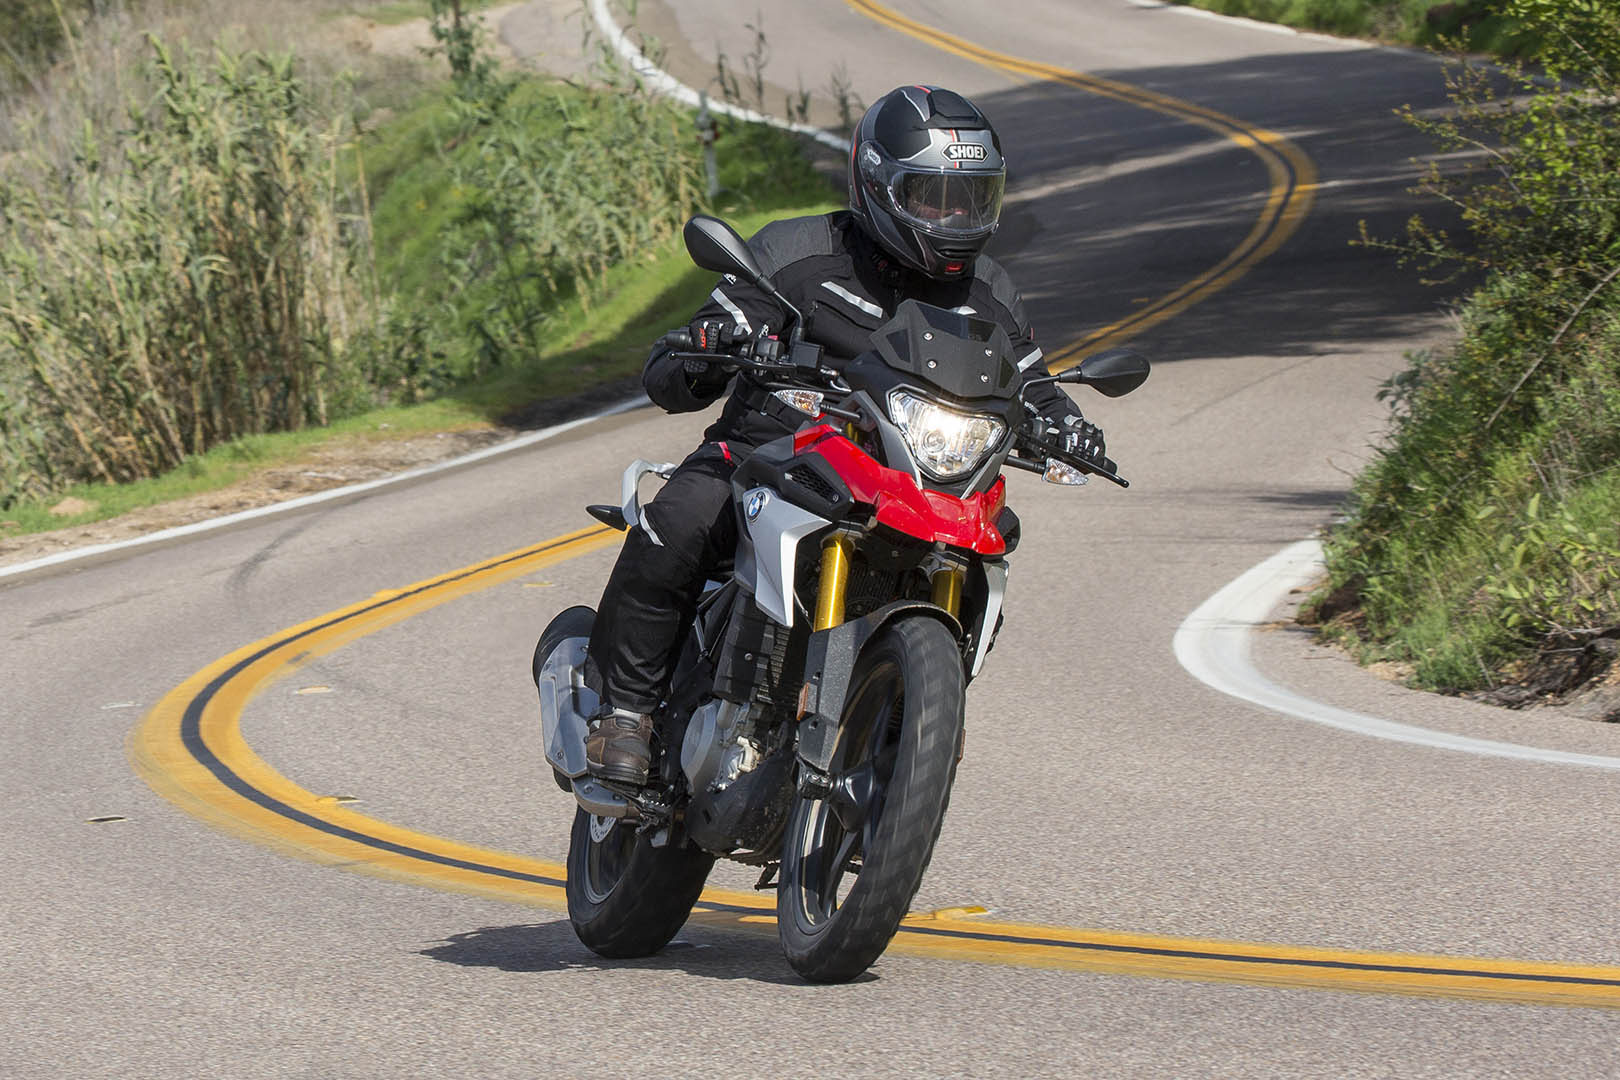 New Rider's Buyer's Guide ADVs: BMW G 310 GS